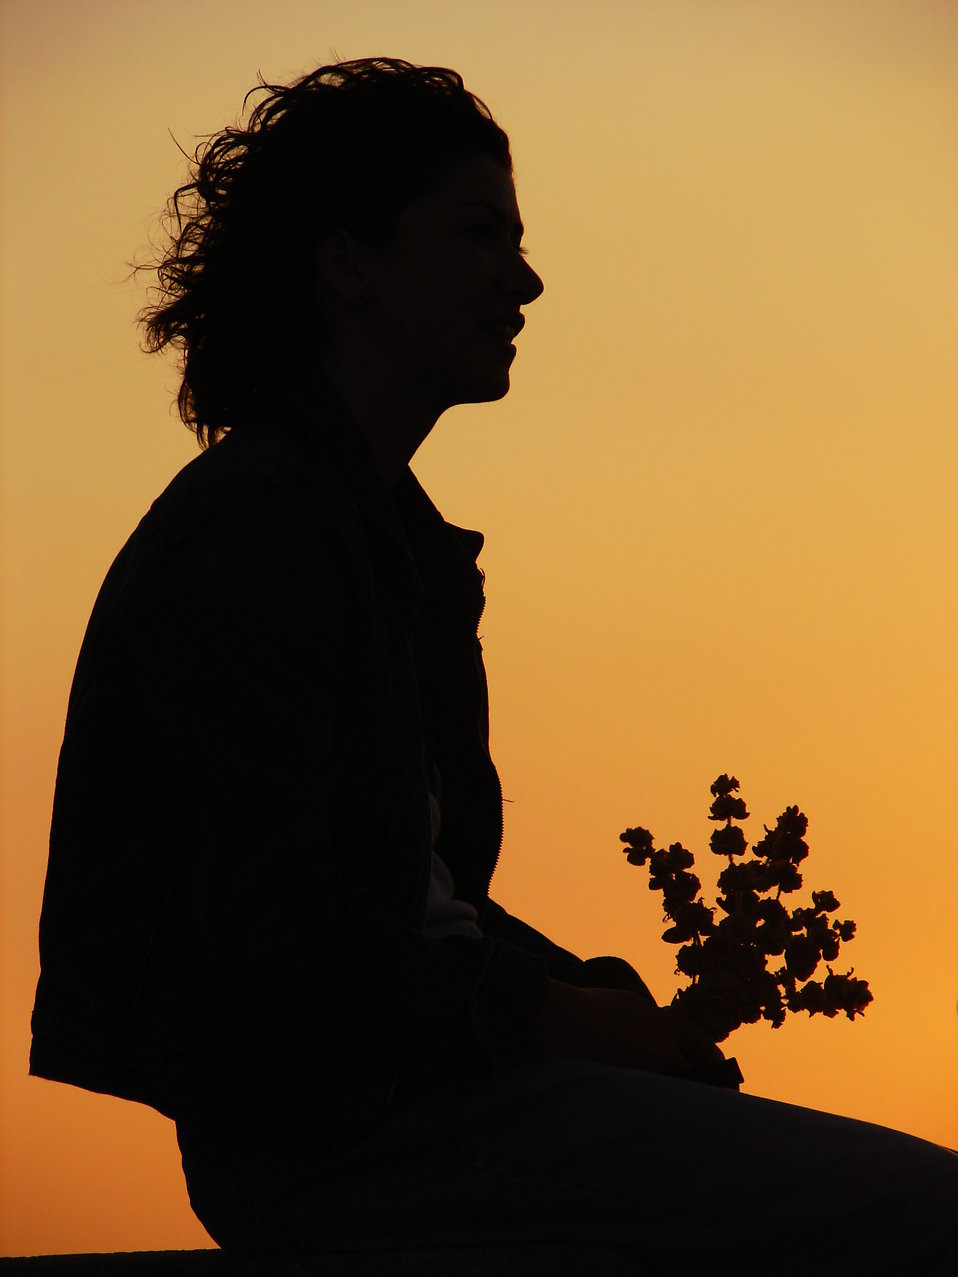 Silhouette of a woman holding flowers before a sunset : Free Stock Photo